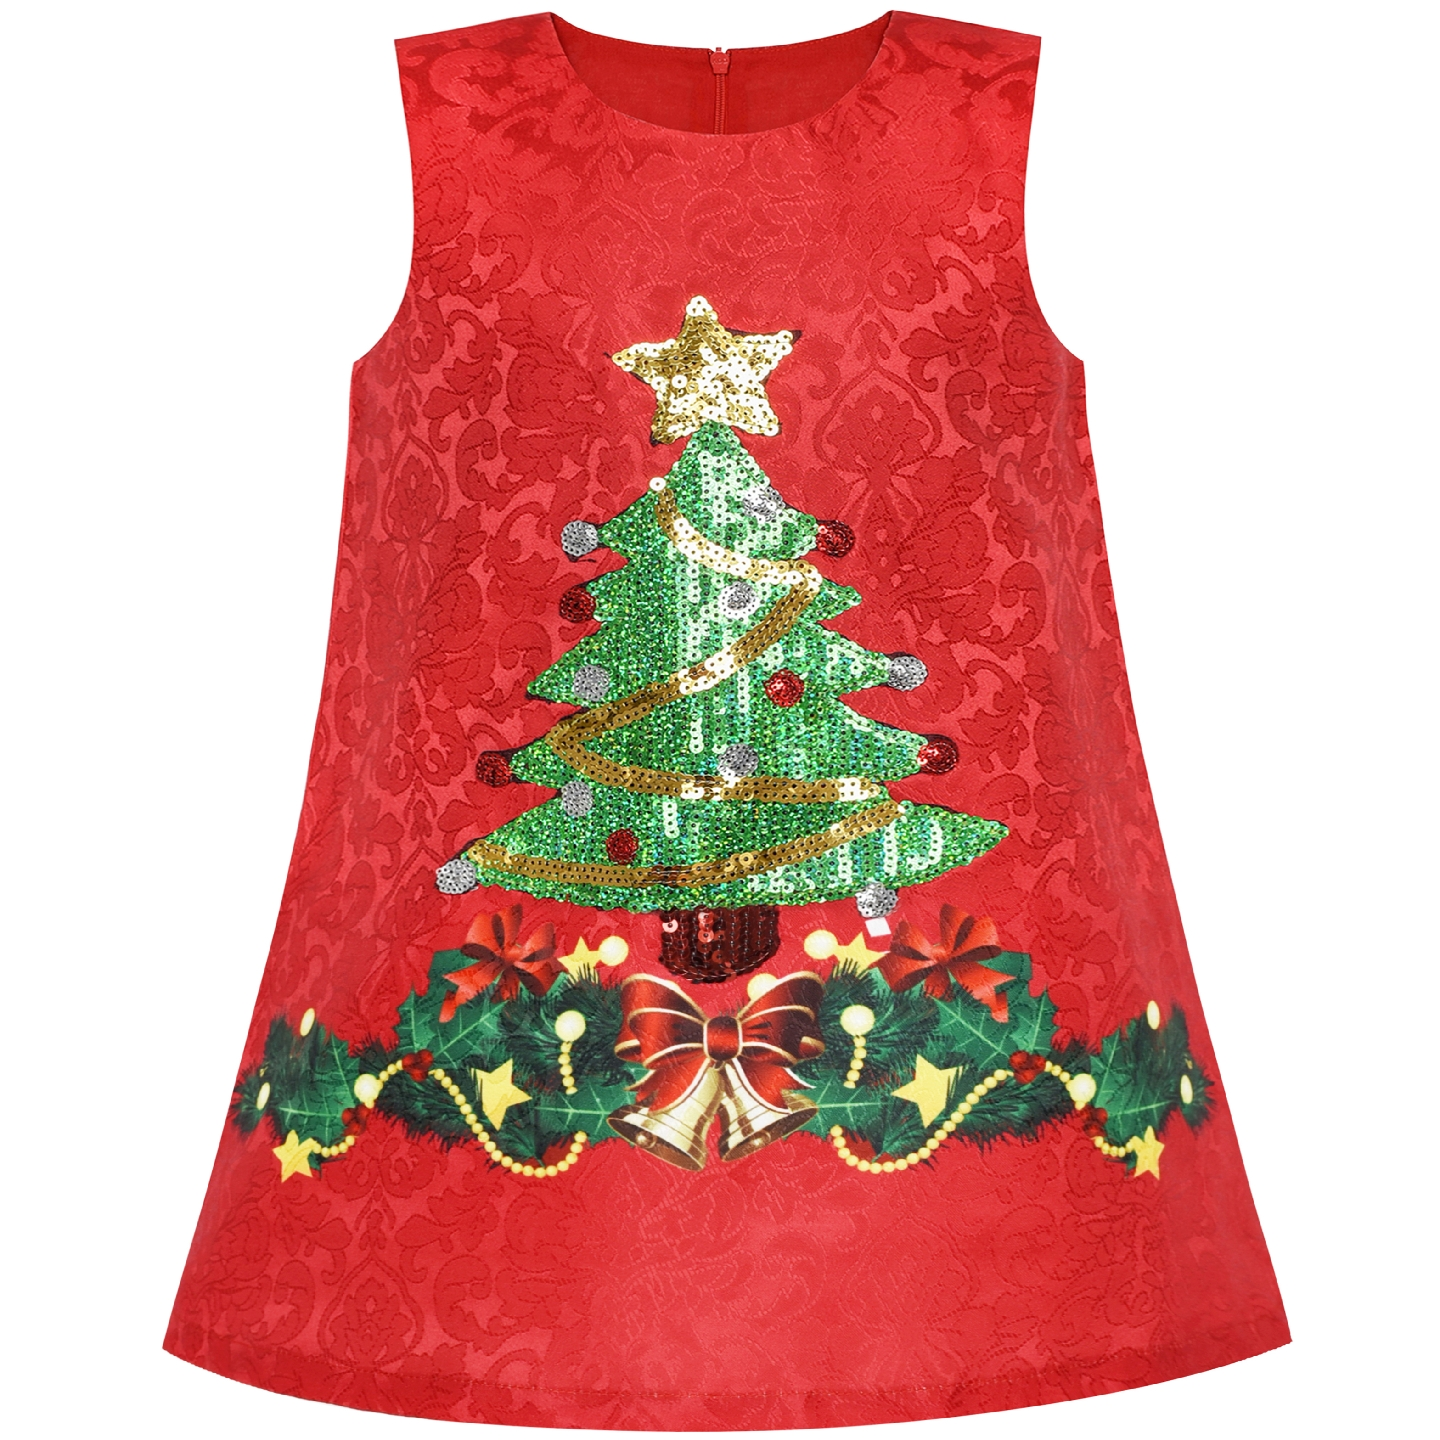 6f9ae62aed1 US $5.05 49% OFF|Flower Girl Dress A line Christmas tree Xmas Sequin  Sparkling Holiday Party 2019 Summer Princess Wedding Dresses Kids  Clothes-in ...